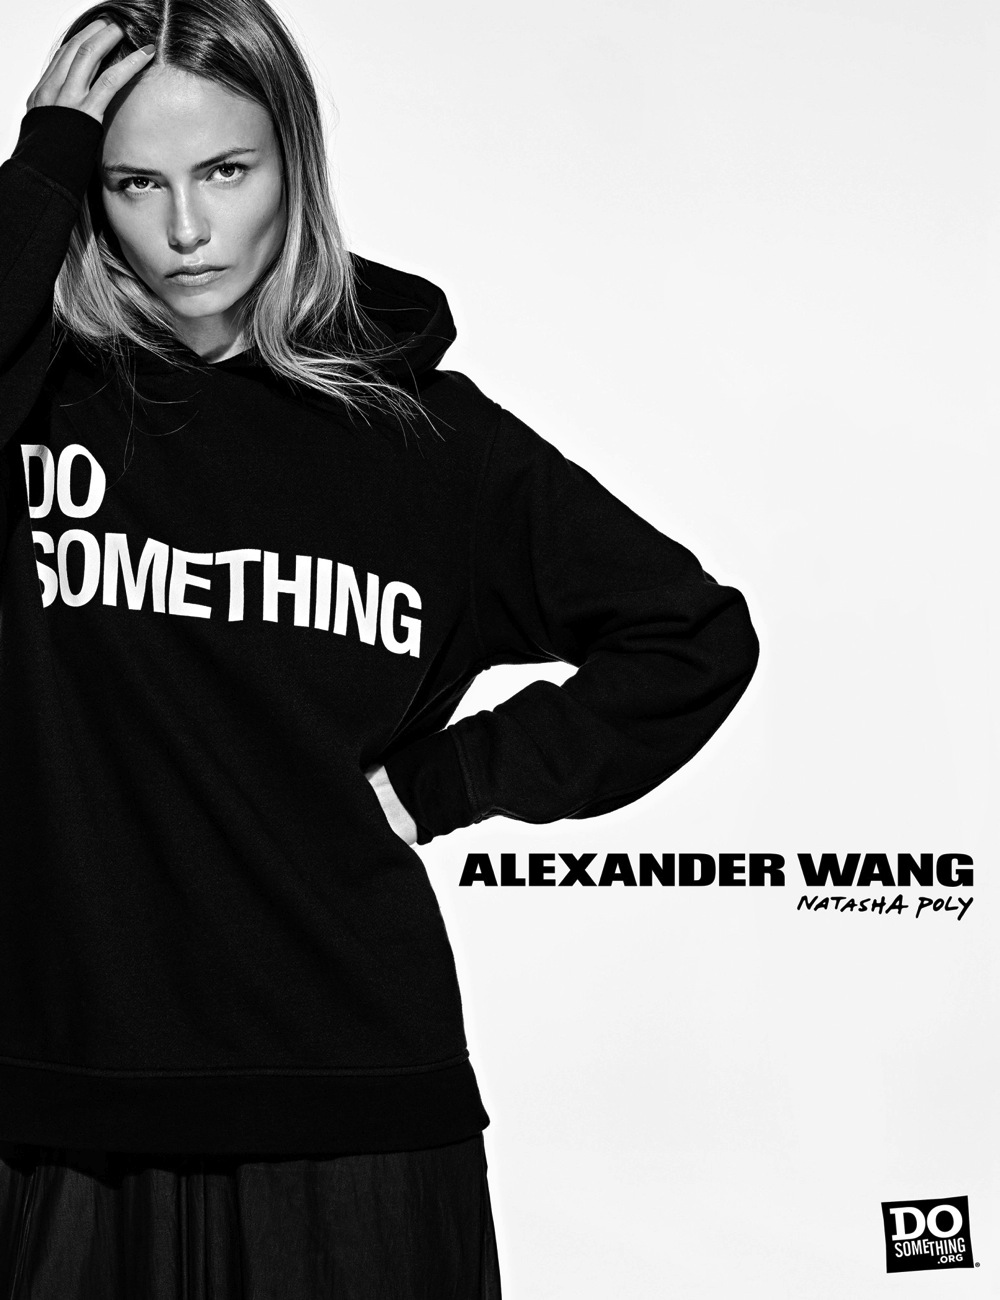 Natasha Poly wears Alexander Wang x DoSomething